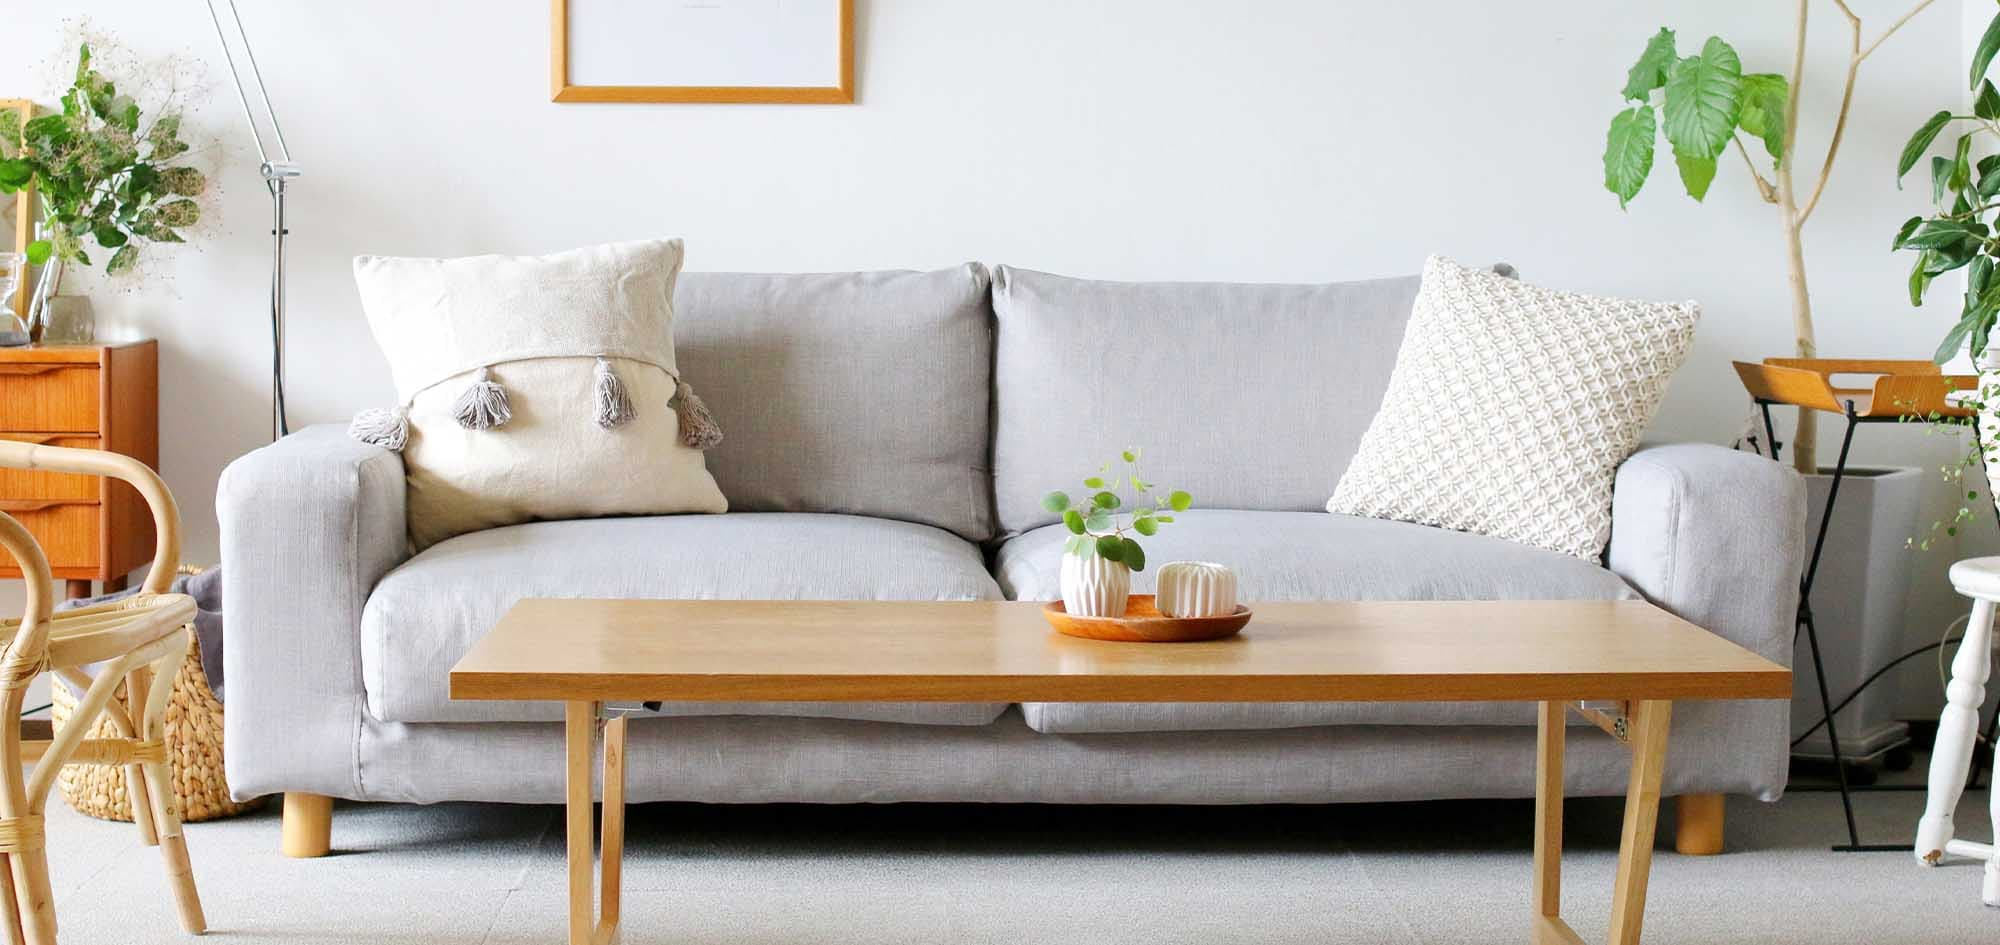 MUJI-wide-arm-sofa-kino-polyester-light-grey-slipcover-hero